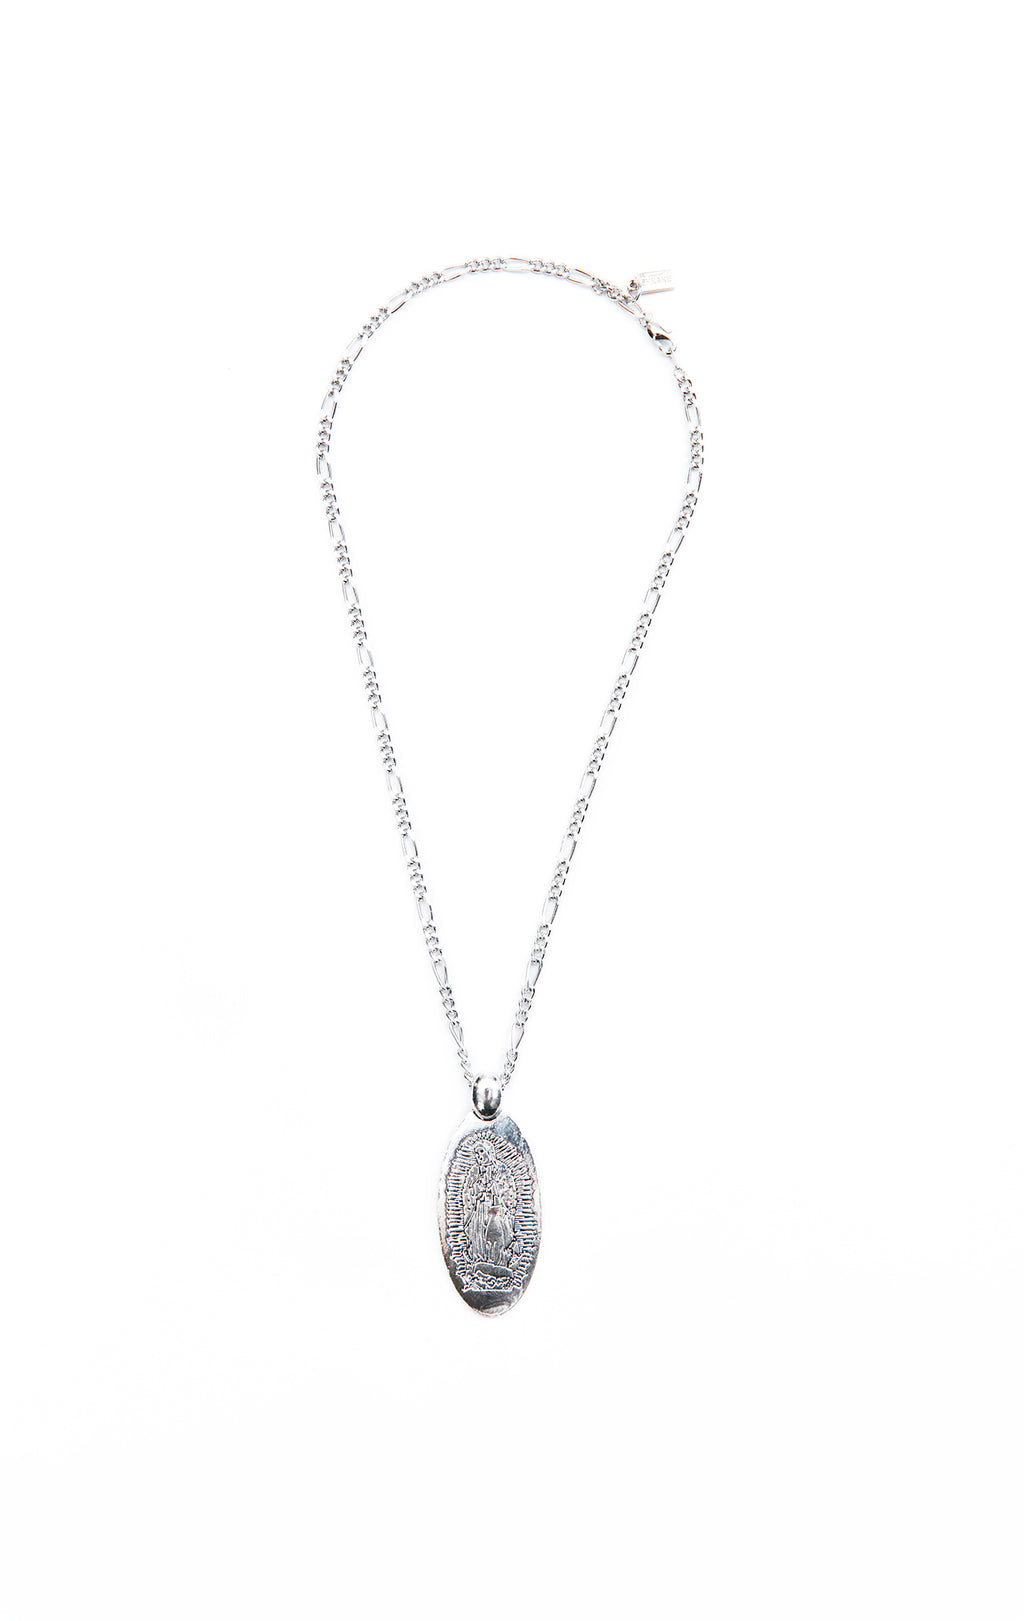 SHRAKE LADY GUADALUPE NECKLACE